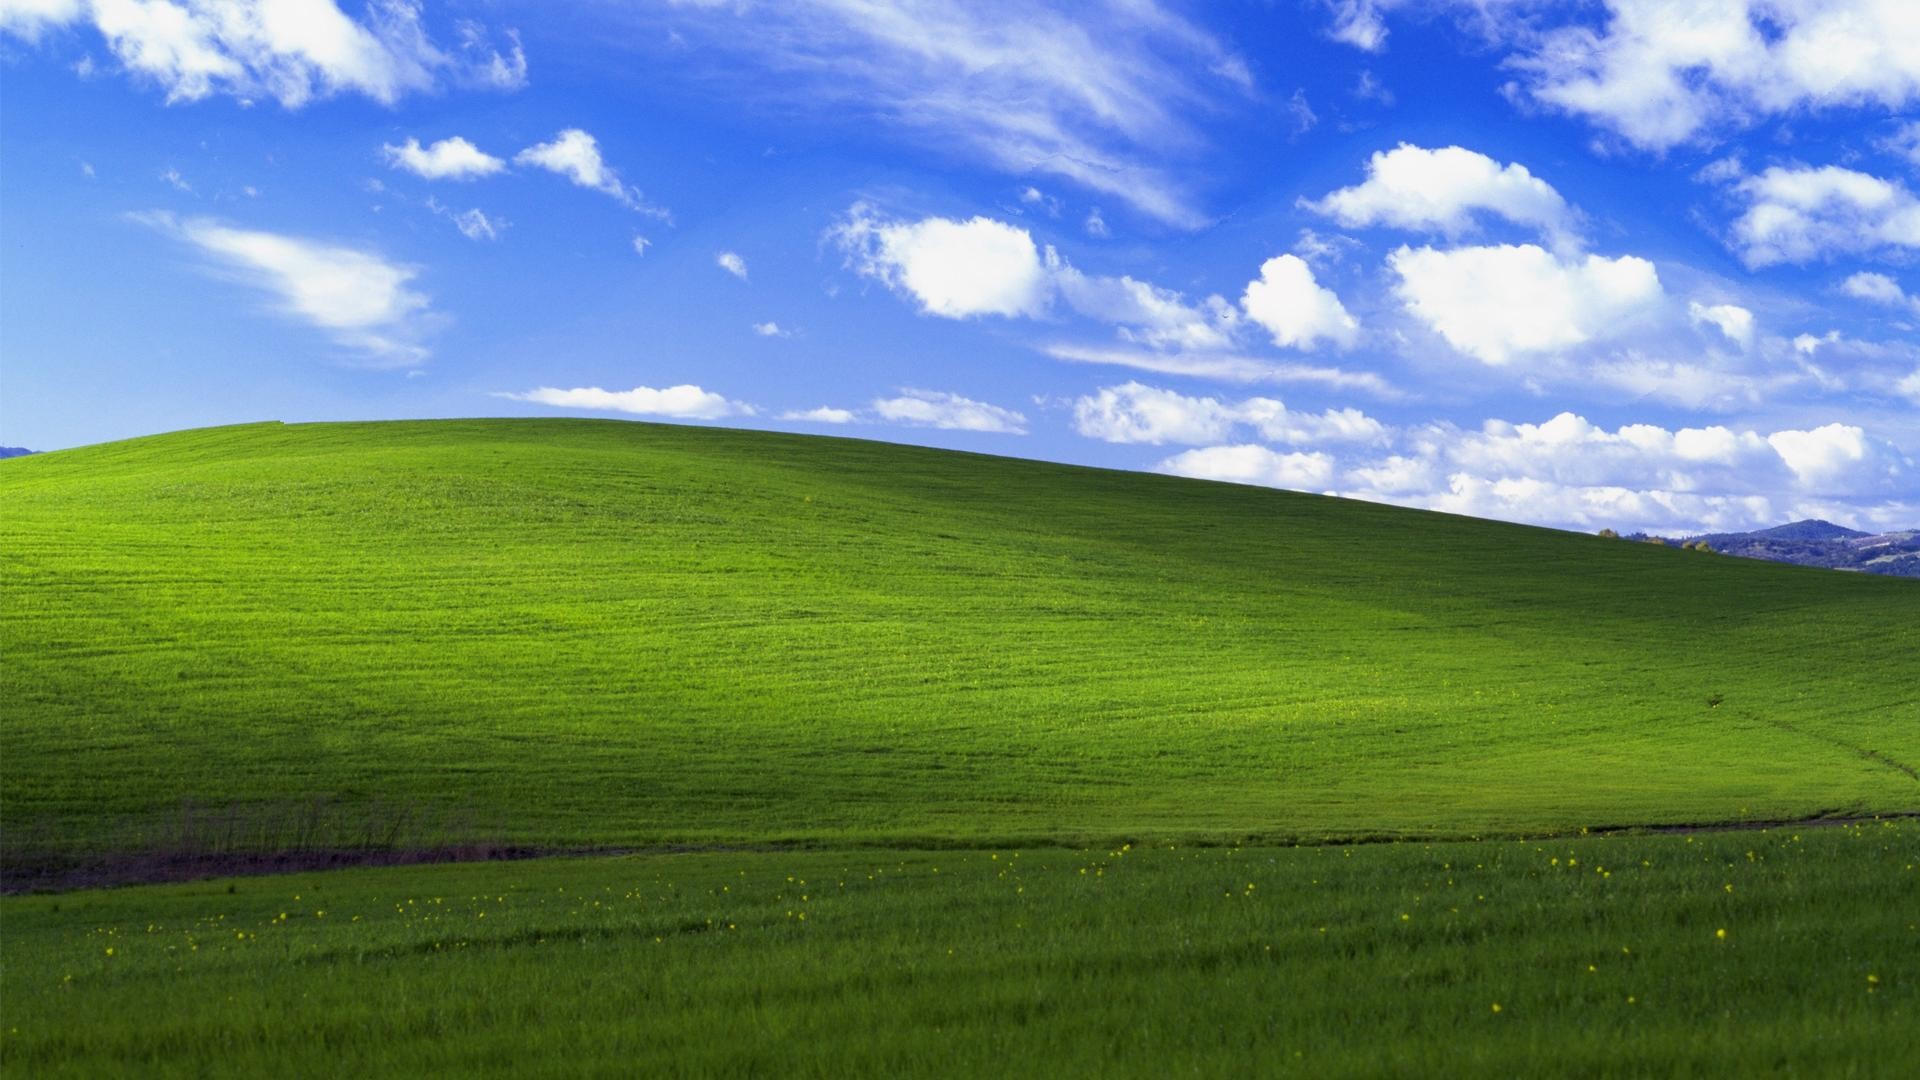 1920x1080 Windows XP wallpaper 2